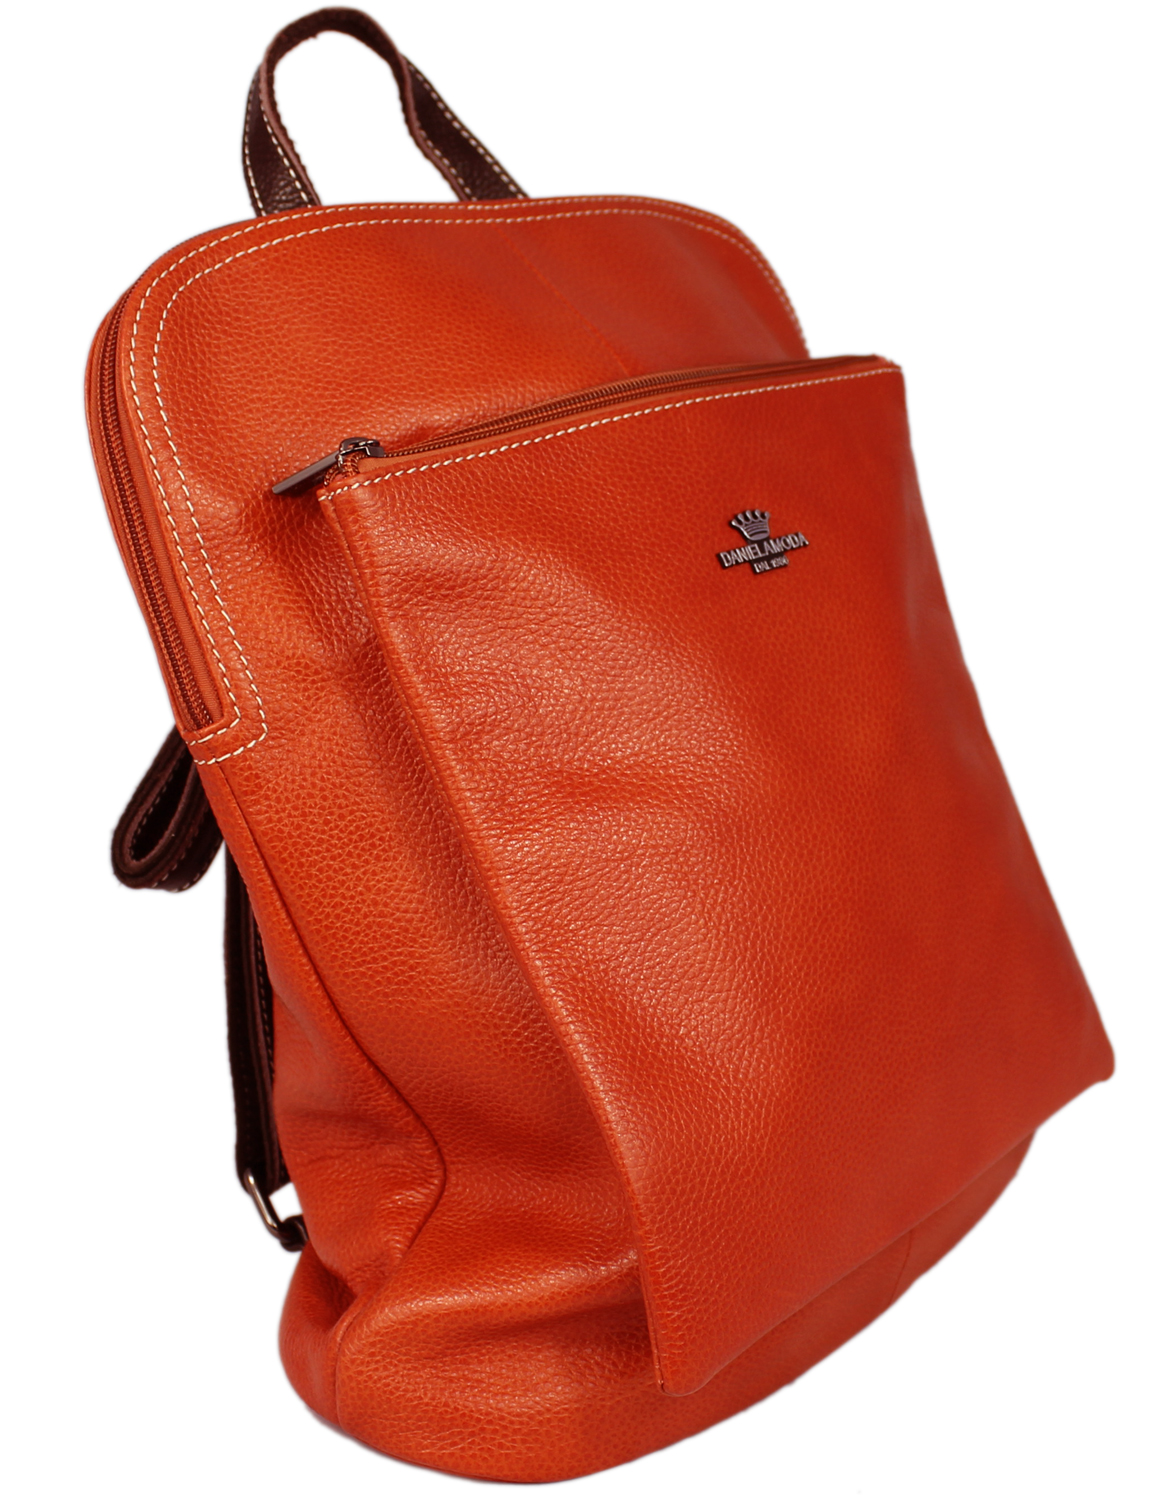 Florence Soft Leather Rucksack in Brick Red with Brown Trim